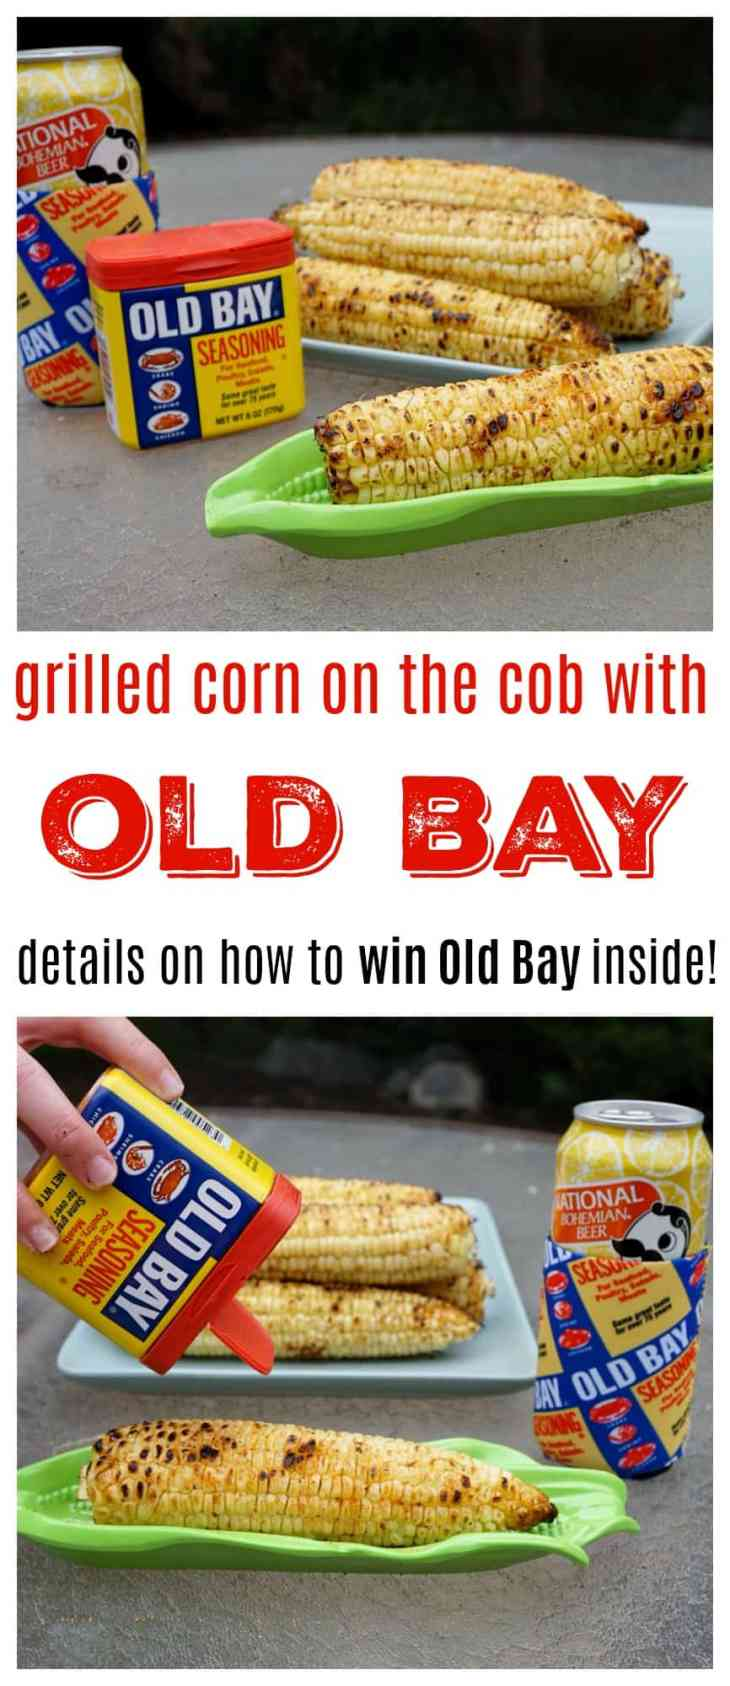 Grilled Corn On The Cob With Old Bay pin